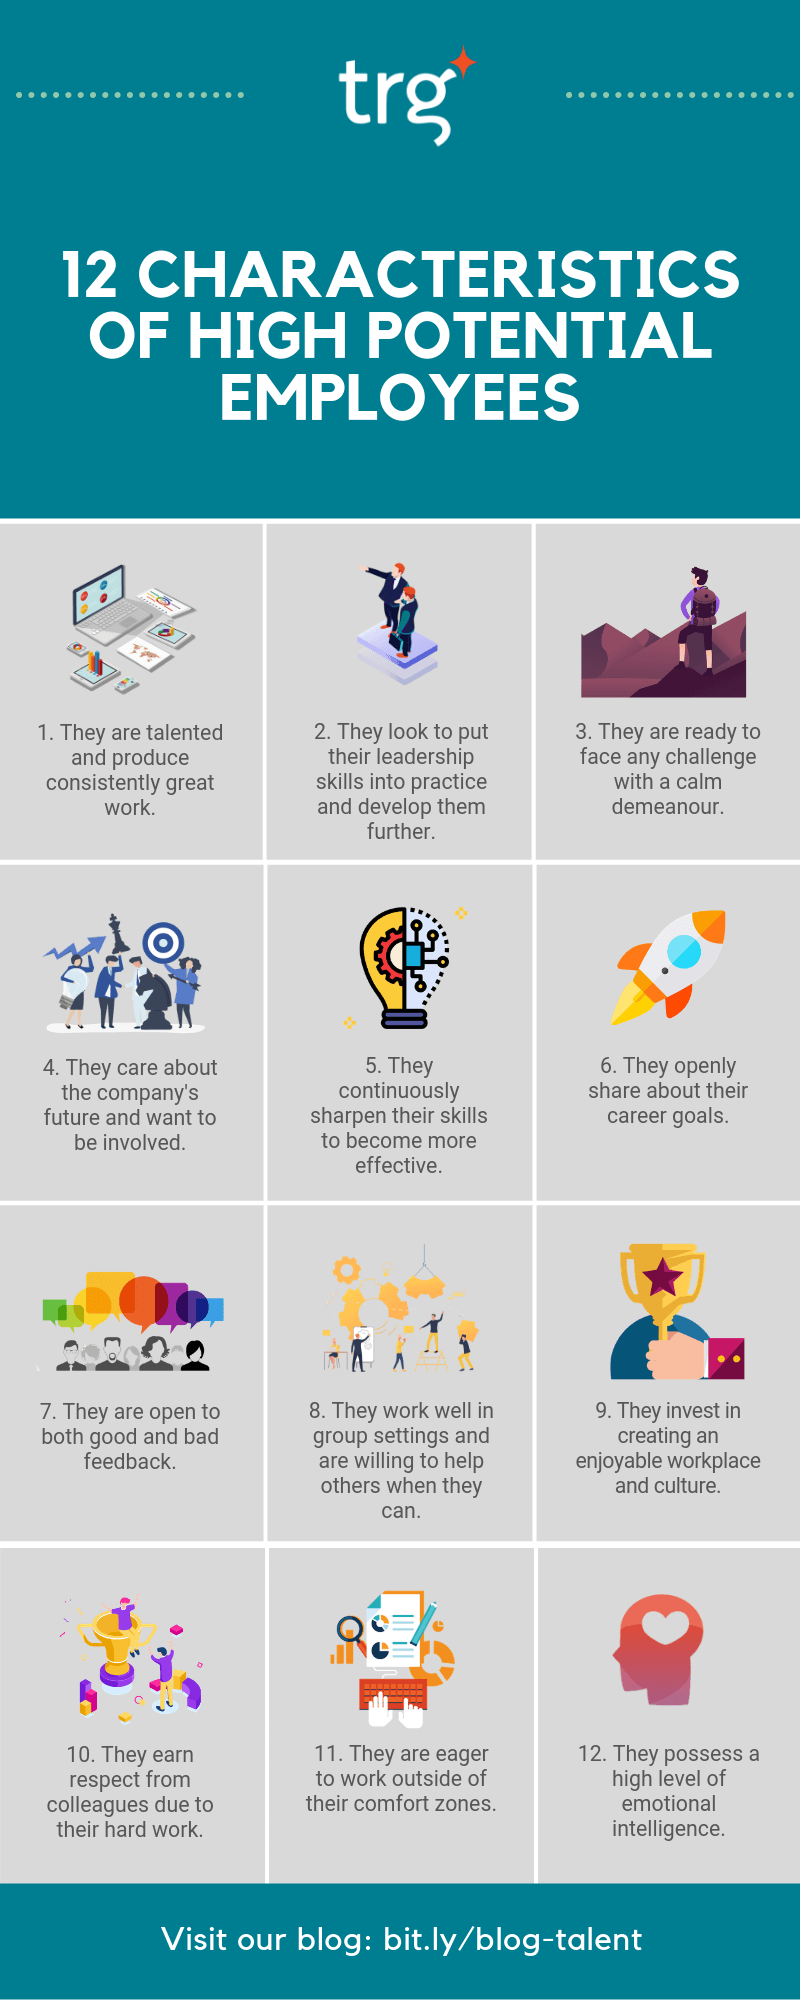 12 characteristics of high potential employees